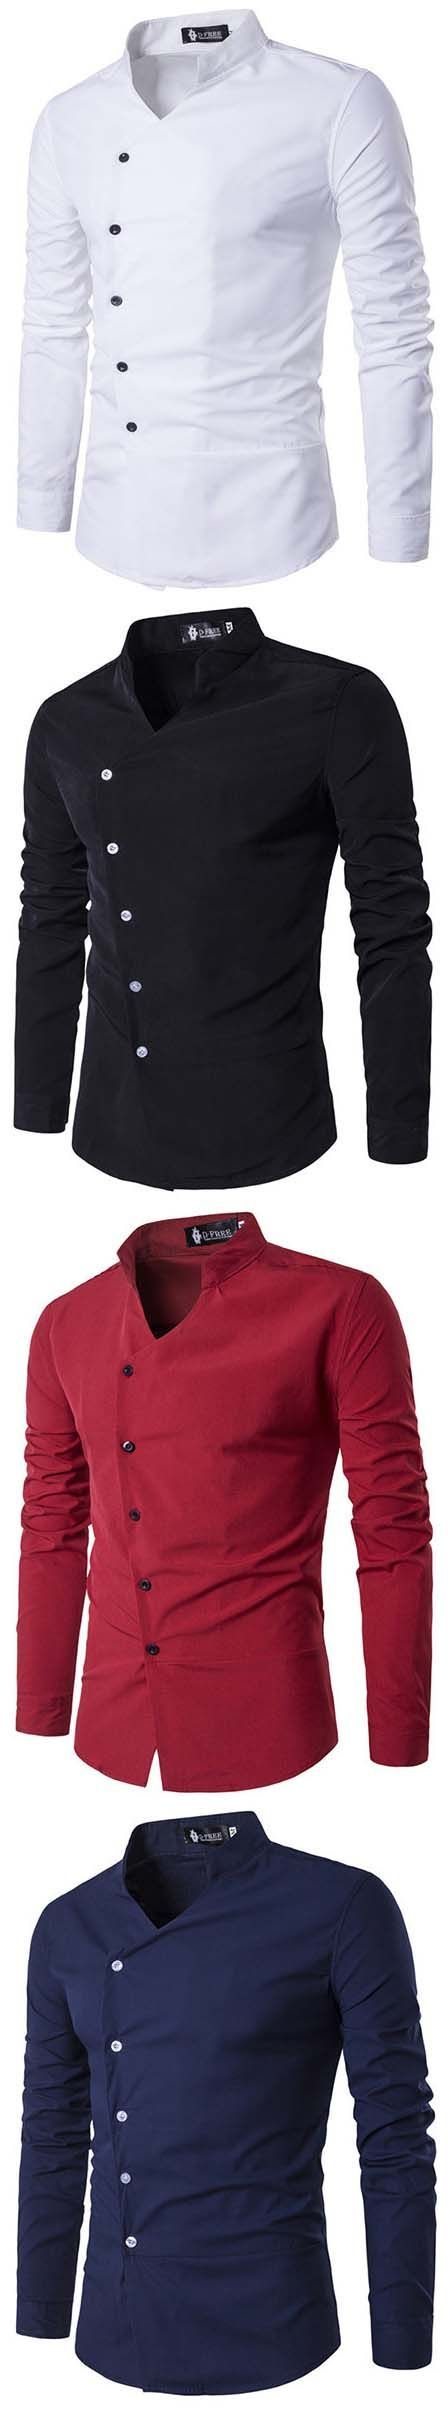 US$18.8#Casual Fashion Oblique Asymmetric Stand Collar Designer Shirts for Men